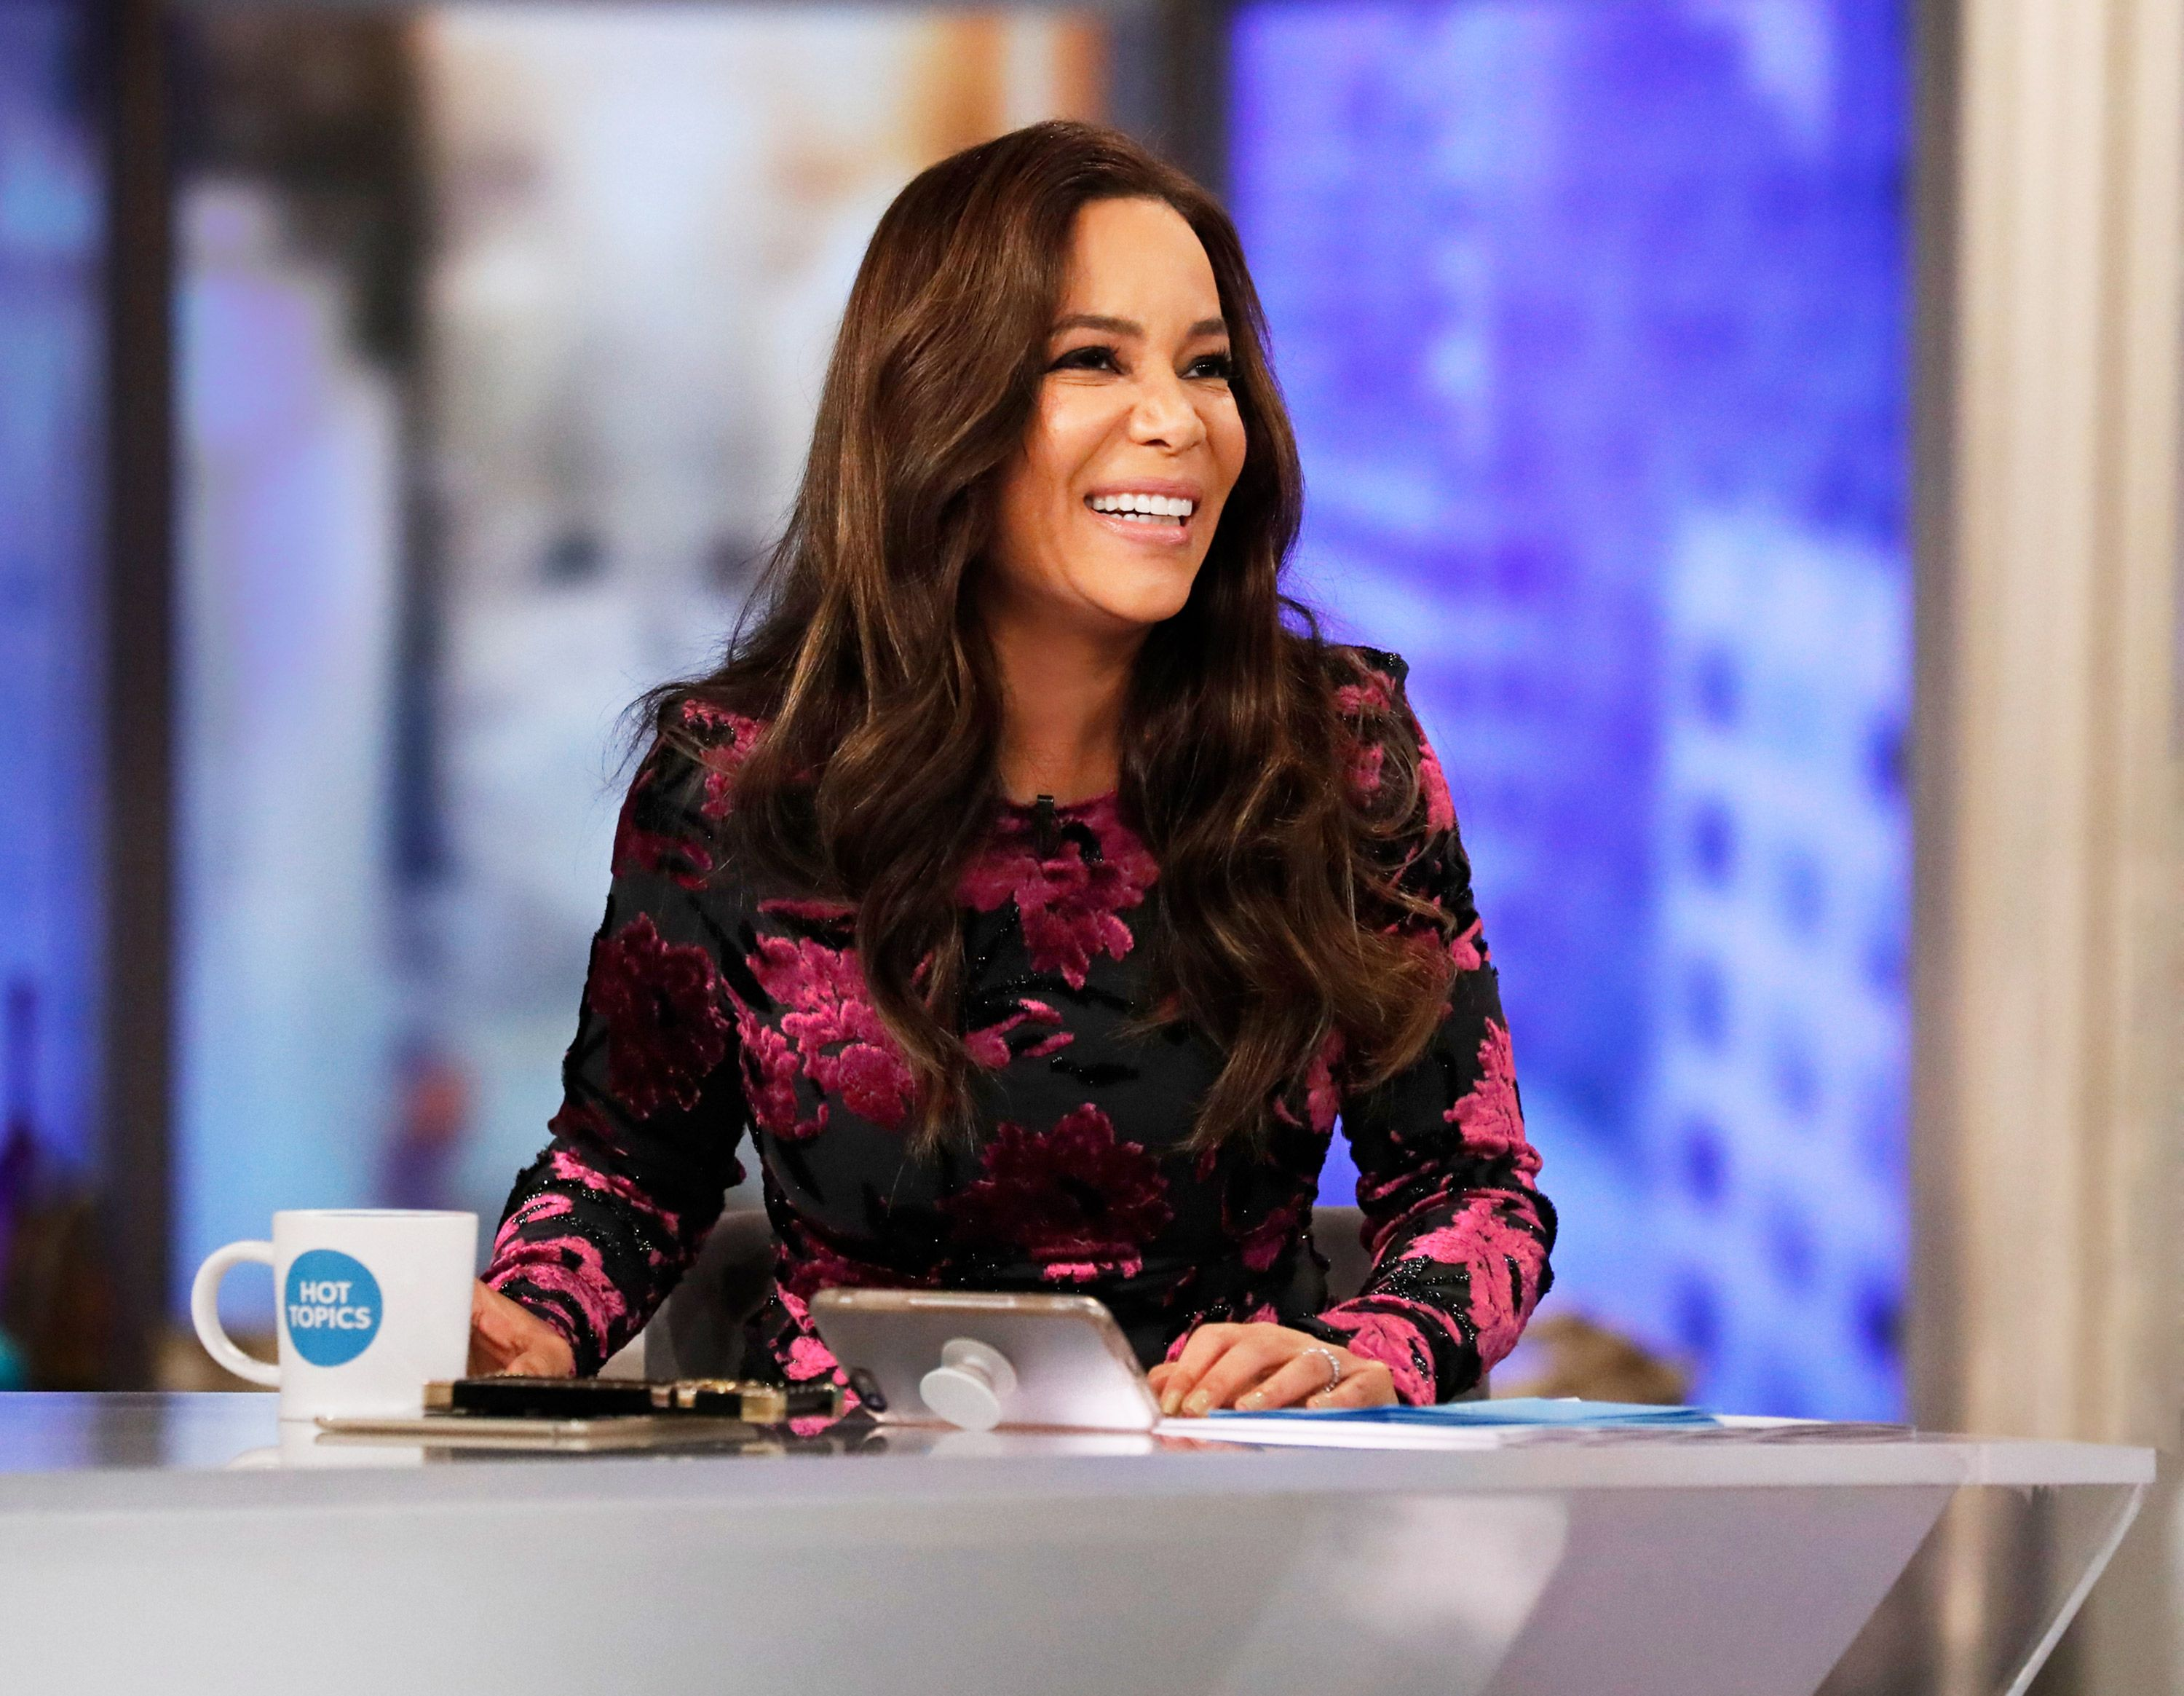 Sunny Hostin Shares the Shocking Reason She Ended Up On TV